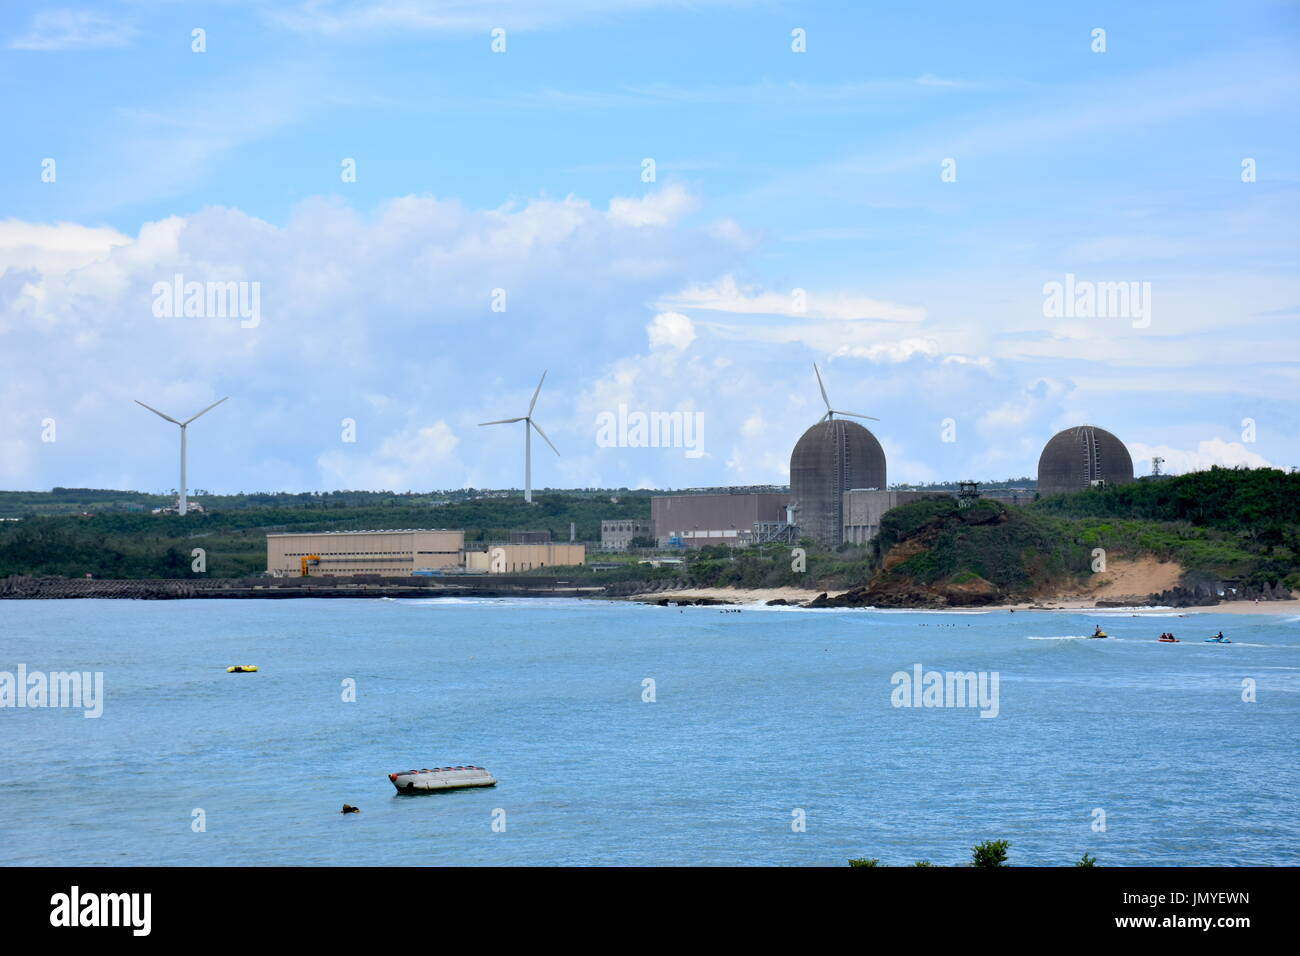 This is a nuclear power plant in South Taiwan with three wind powered windmills behind them to make the public happy. - Stock Image